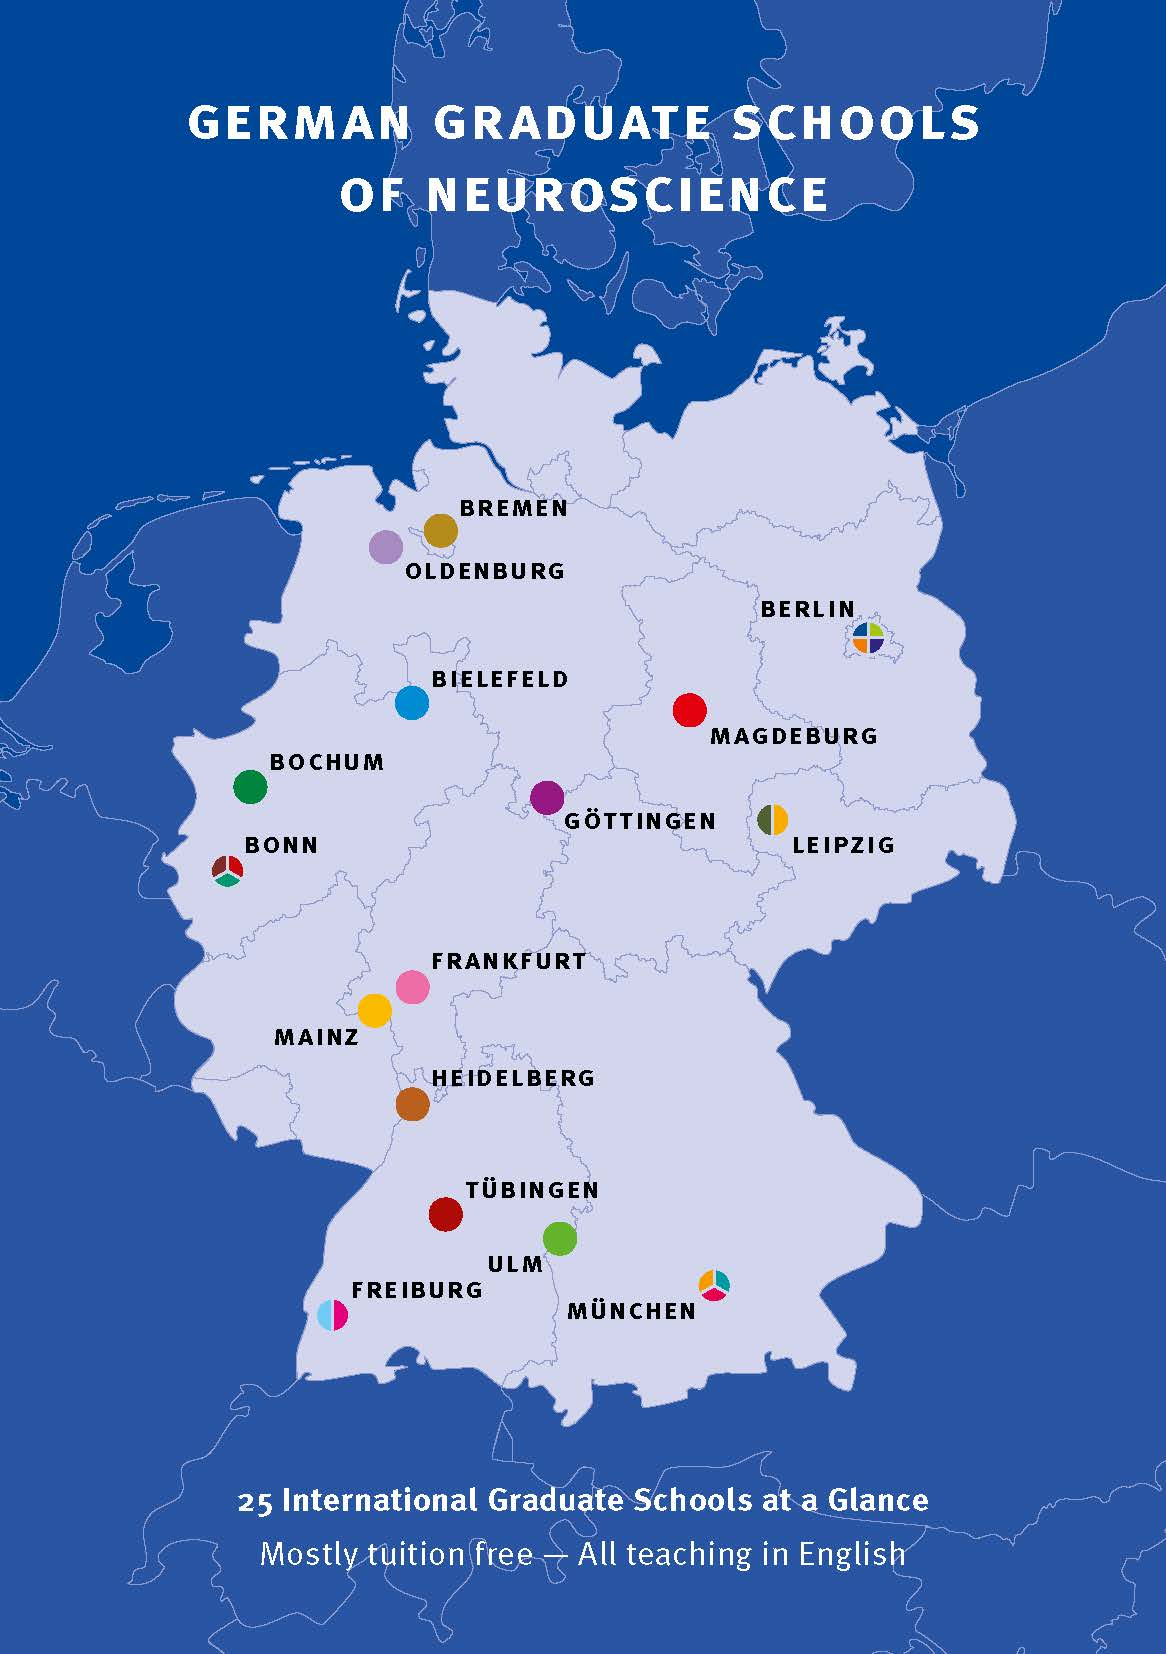 German Graduate Schools Of Neuroscience - Germany map gottingen